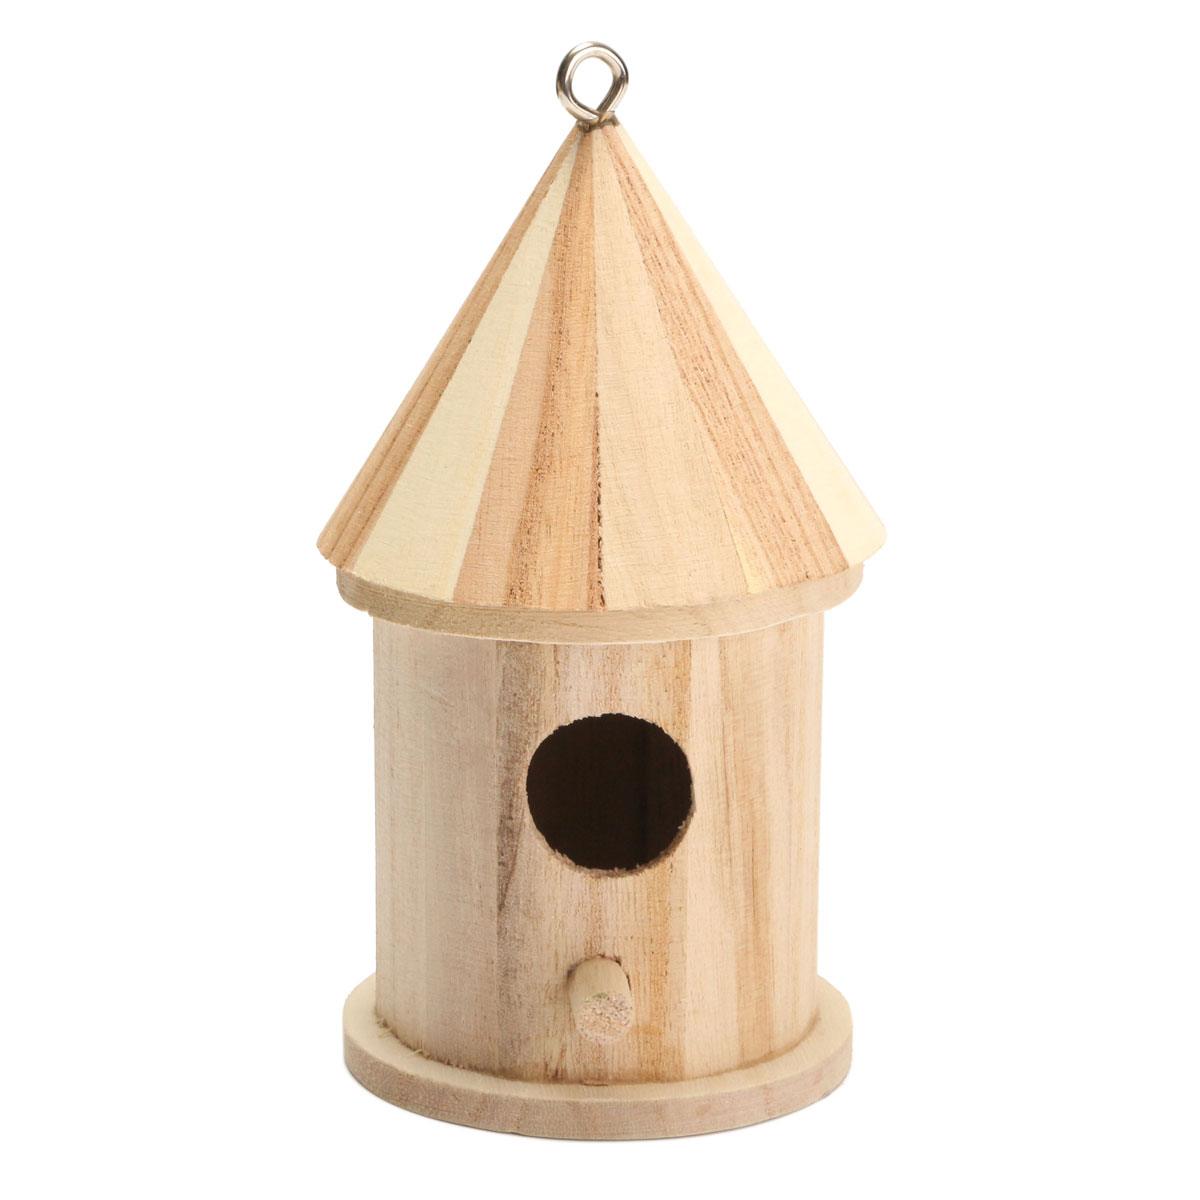 new wooden bird house birdhouse hanging nest nesting box for home garden decor lazada malaysia. Black Bedroom Furniture Sets. Home Design Ideas